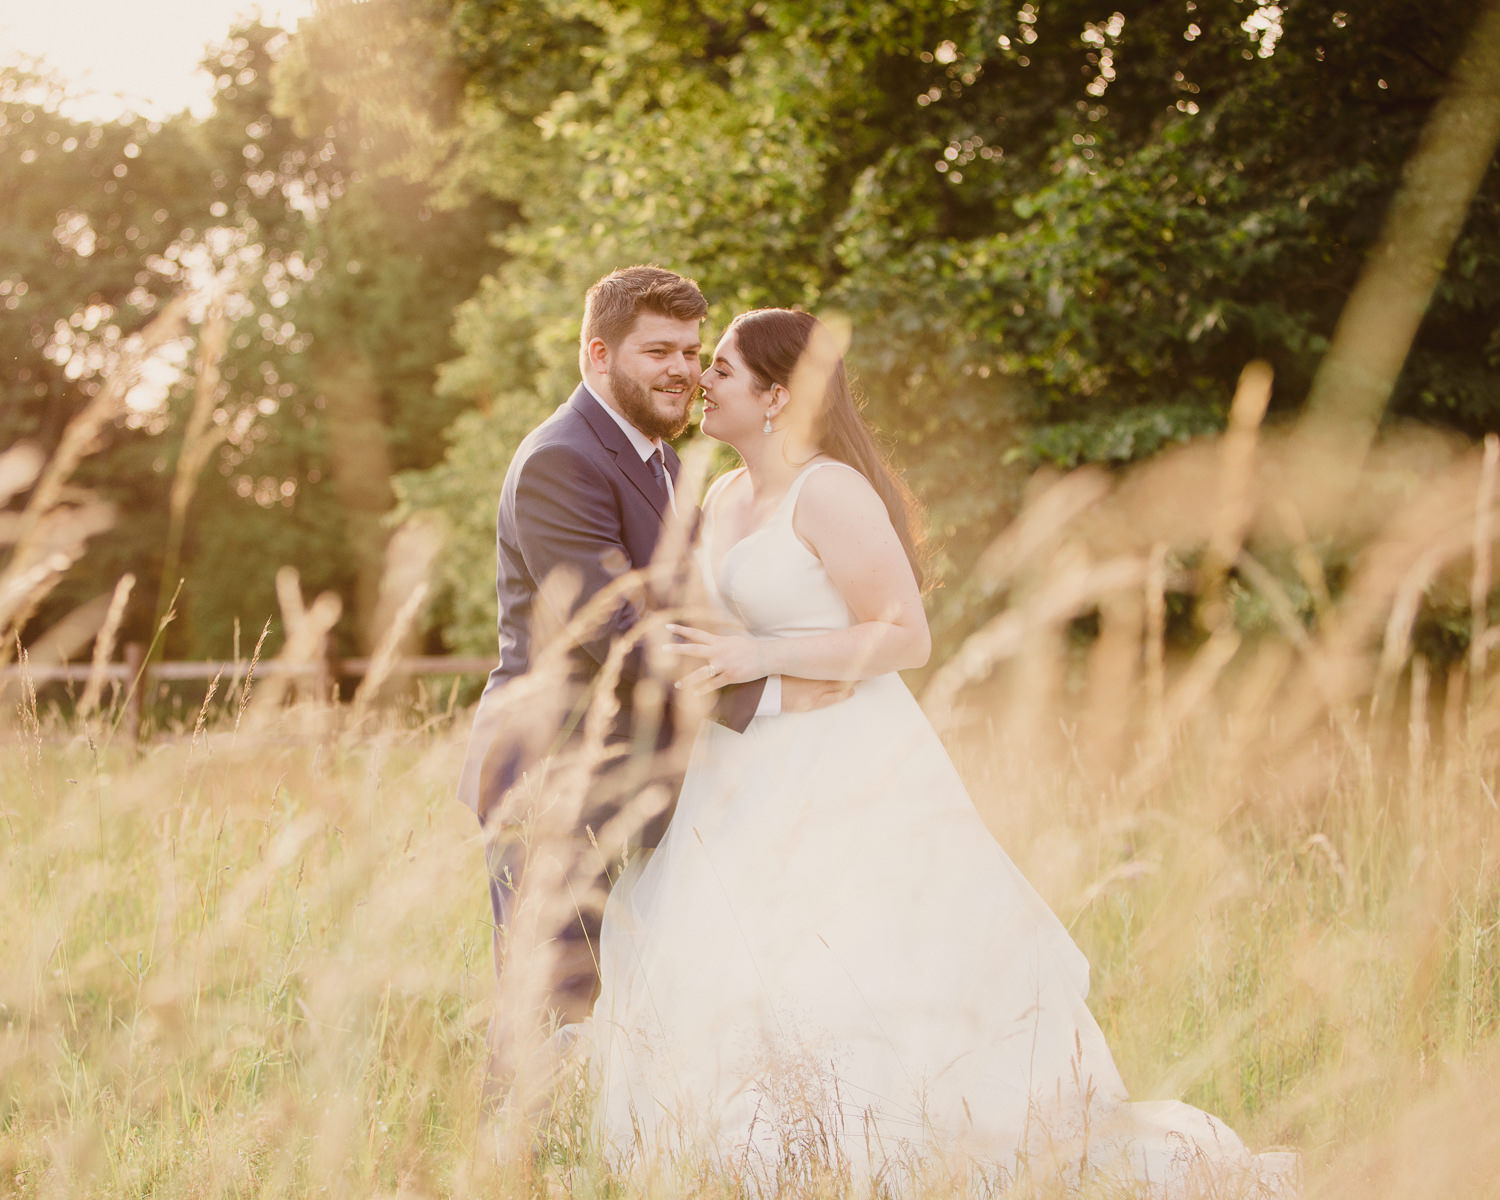 Bride & groom in a field with long grass in golden evening light